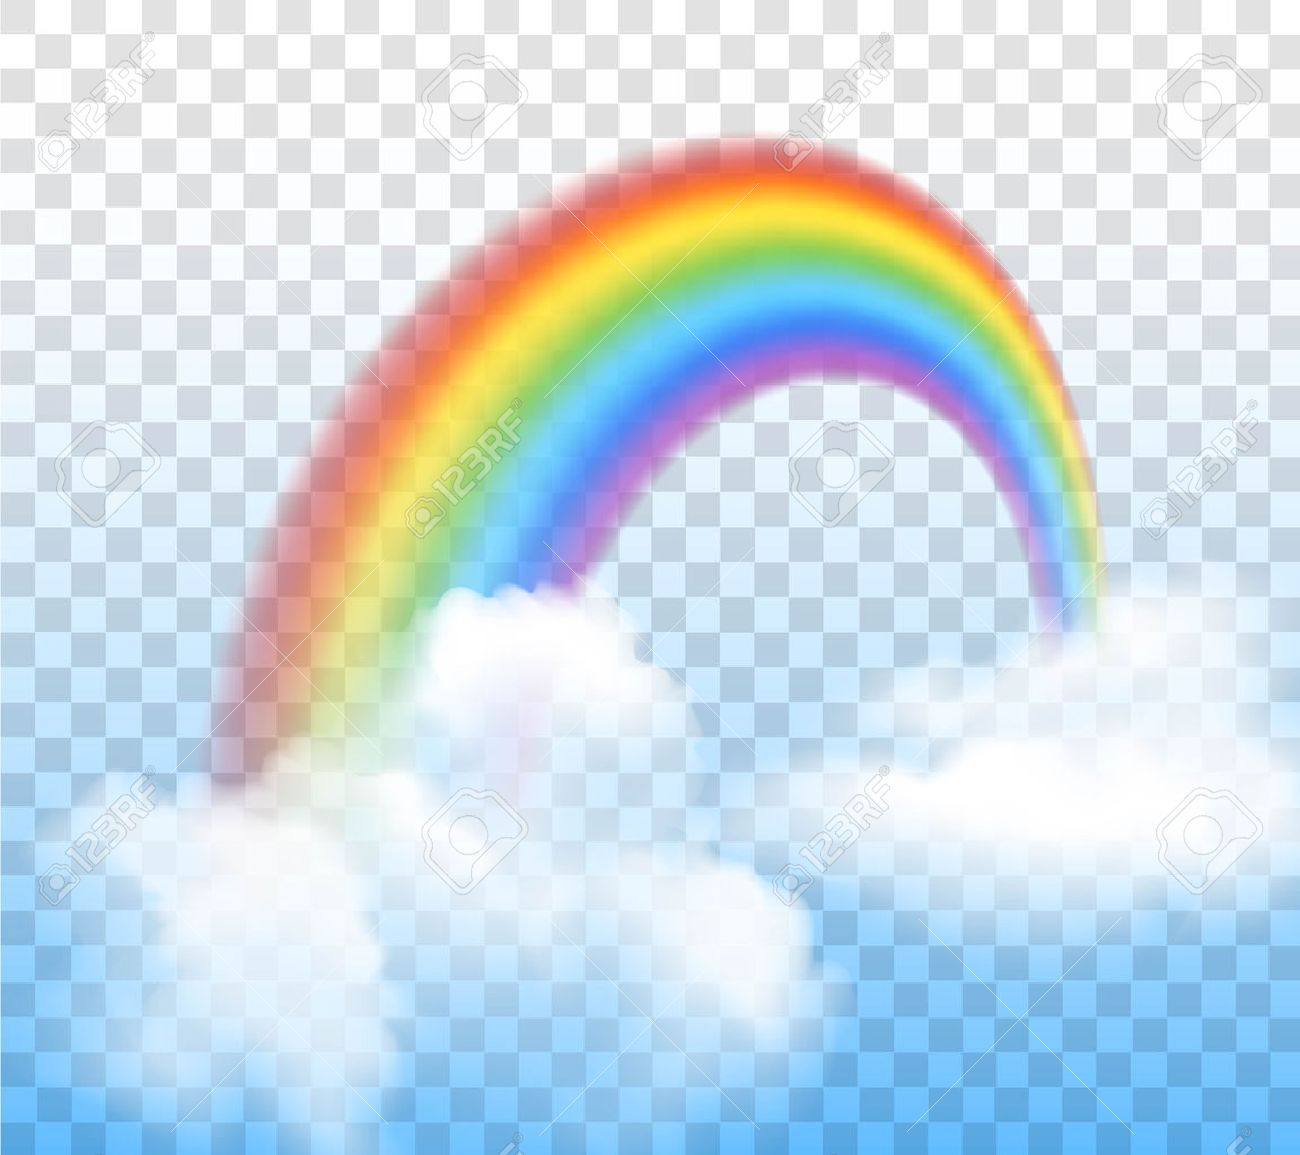 Bright Arched Rainbow With Clouds Realistic Vector Illustration On Transparent Background Stock